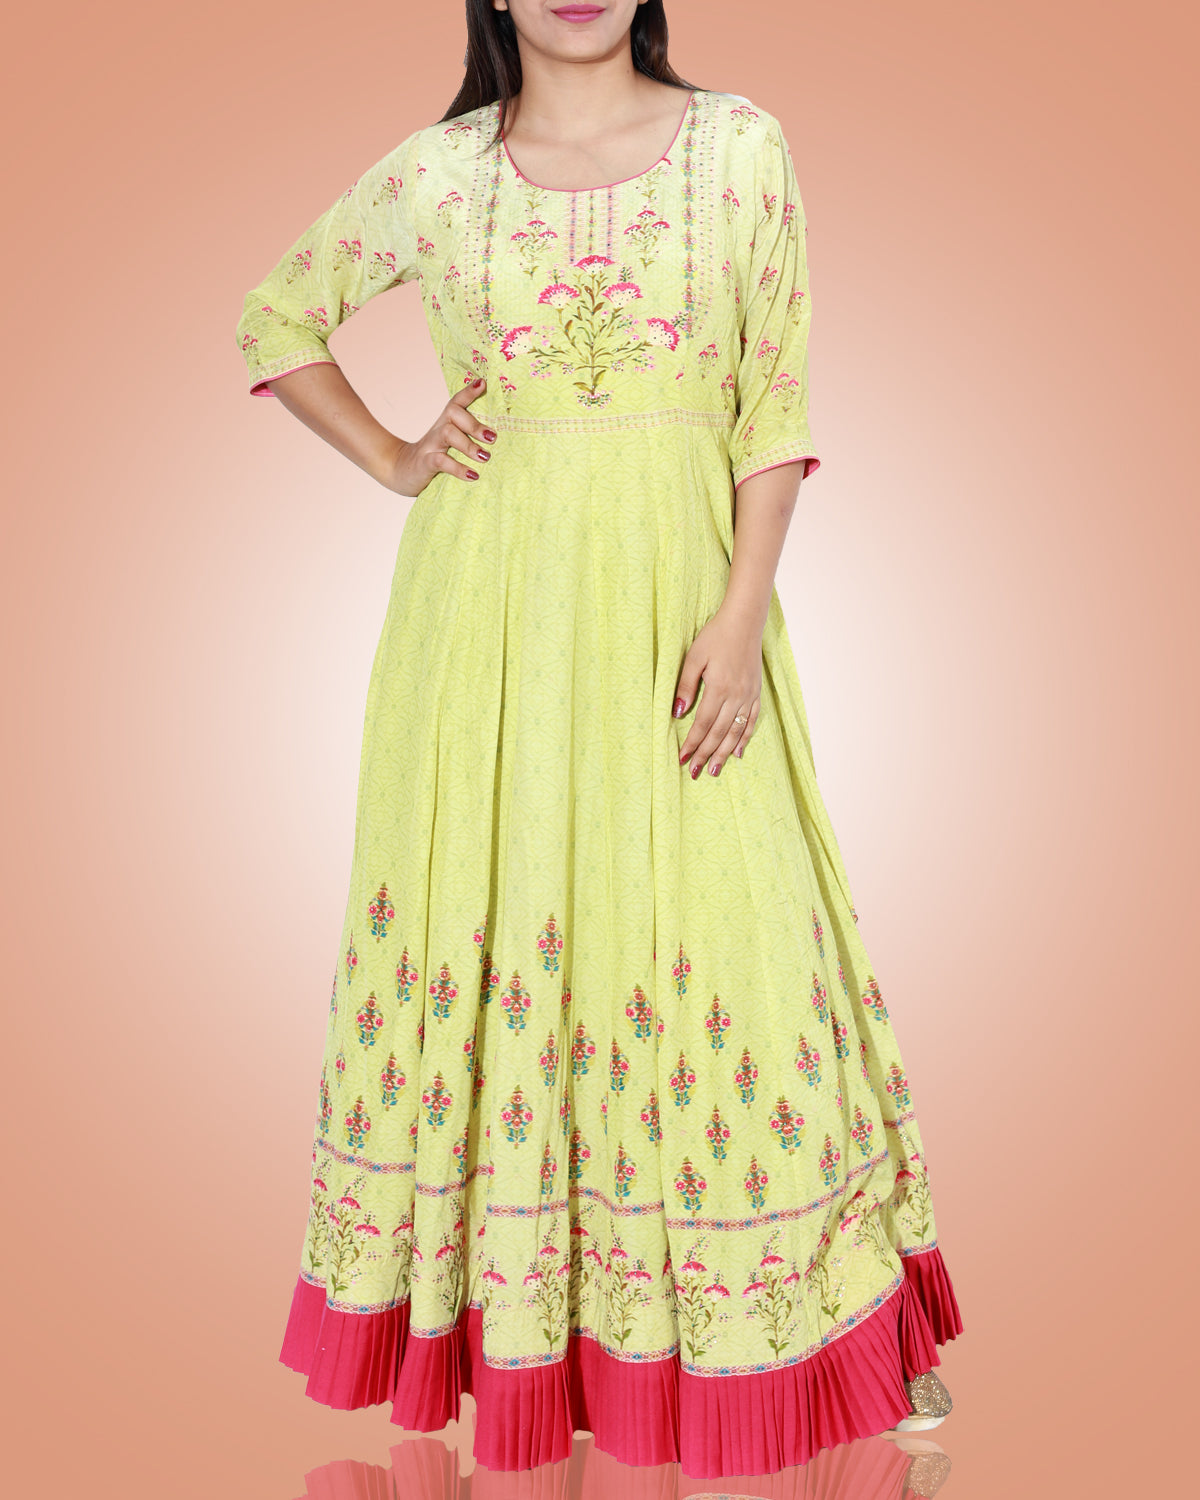 Green A Lined Long Kurta With Red Floral Print